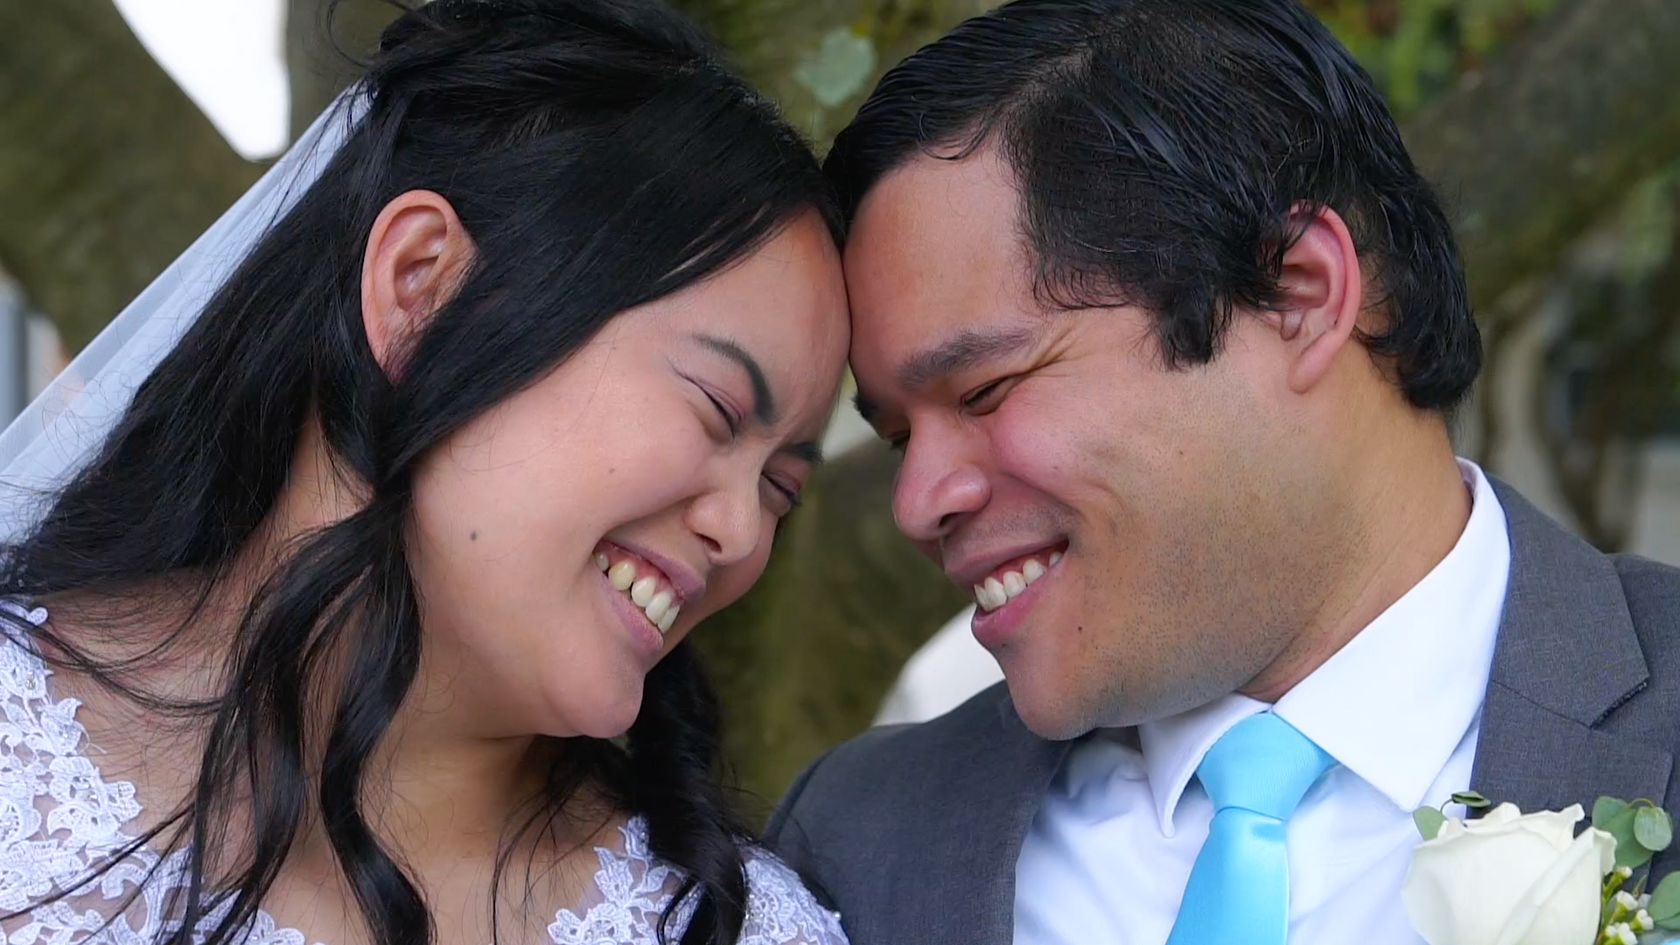 Brandon & Felicia Wedding Highlight Film